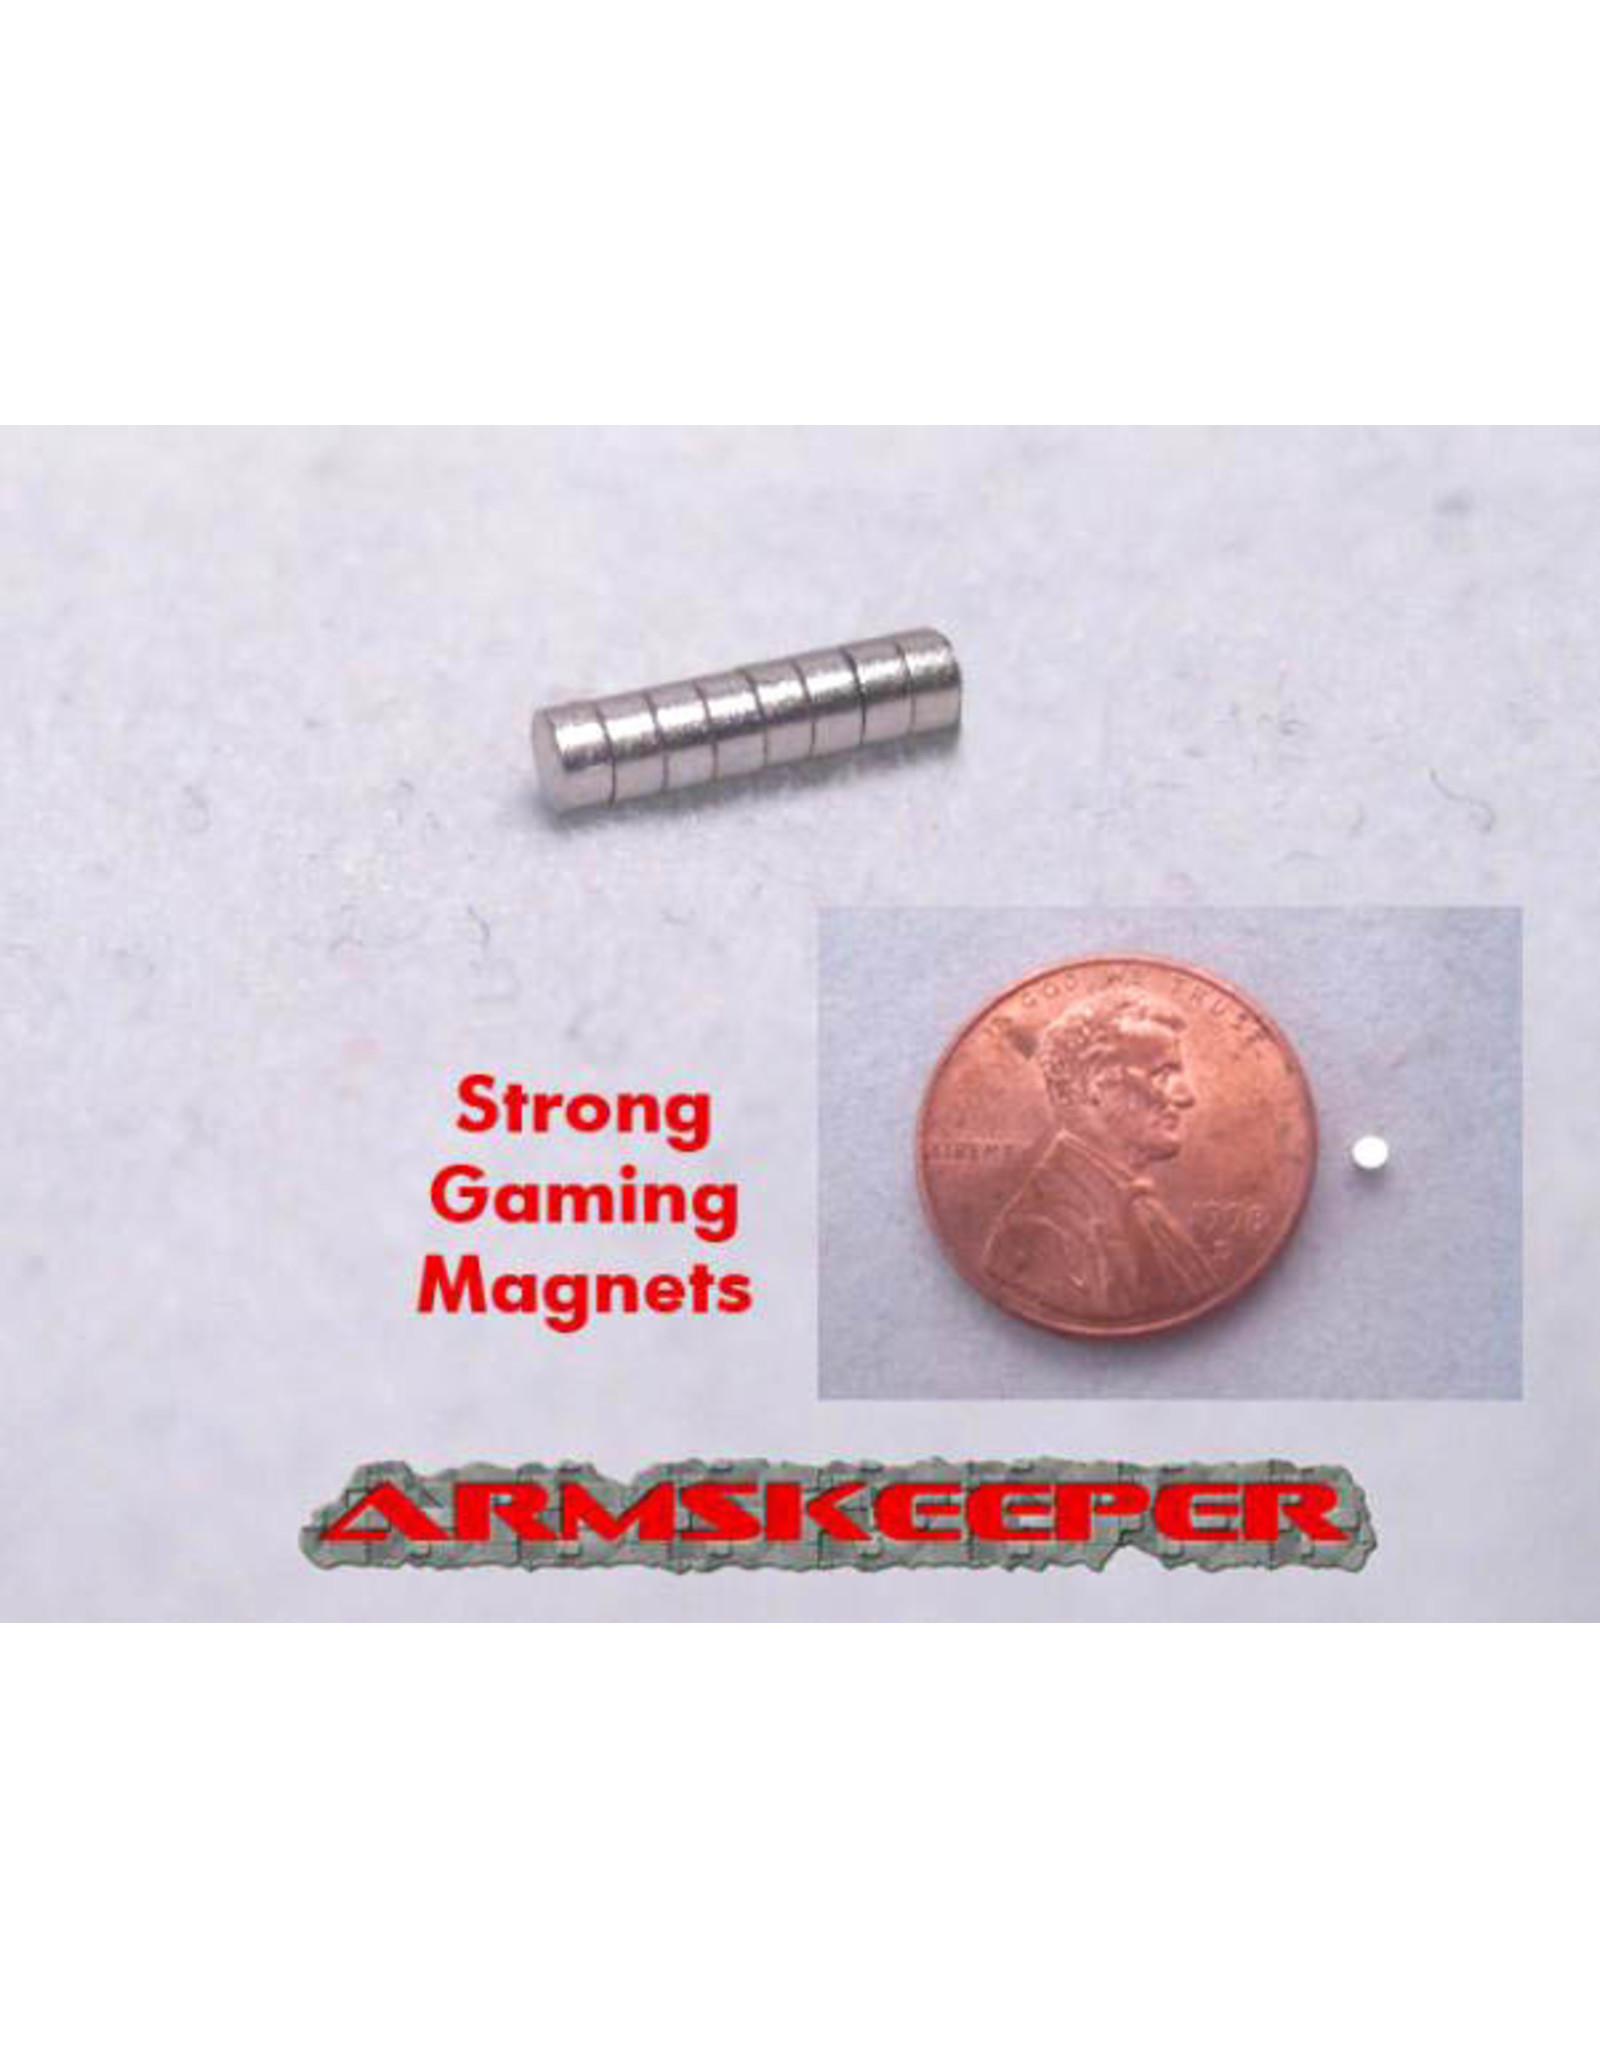 Armskeeper Magnets Small